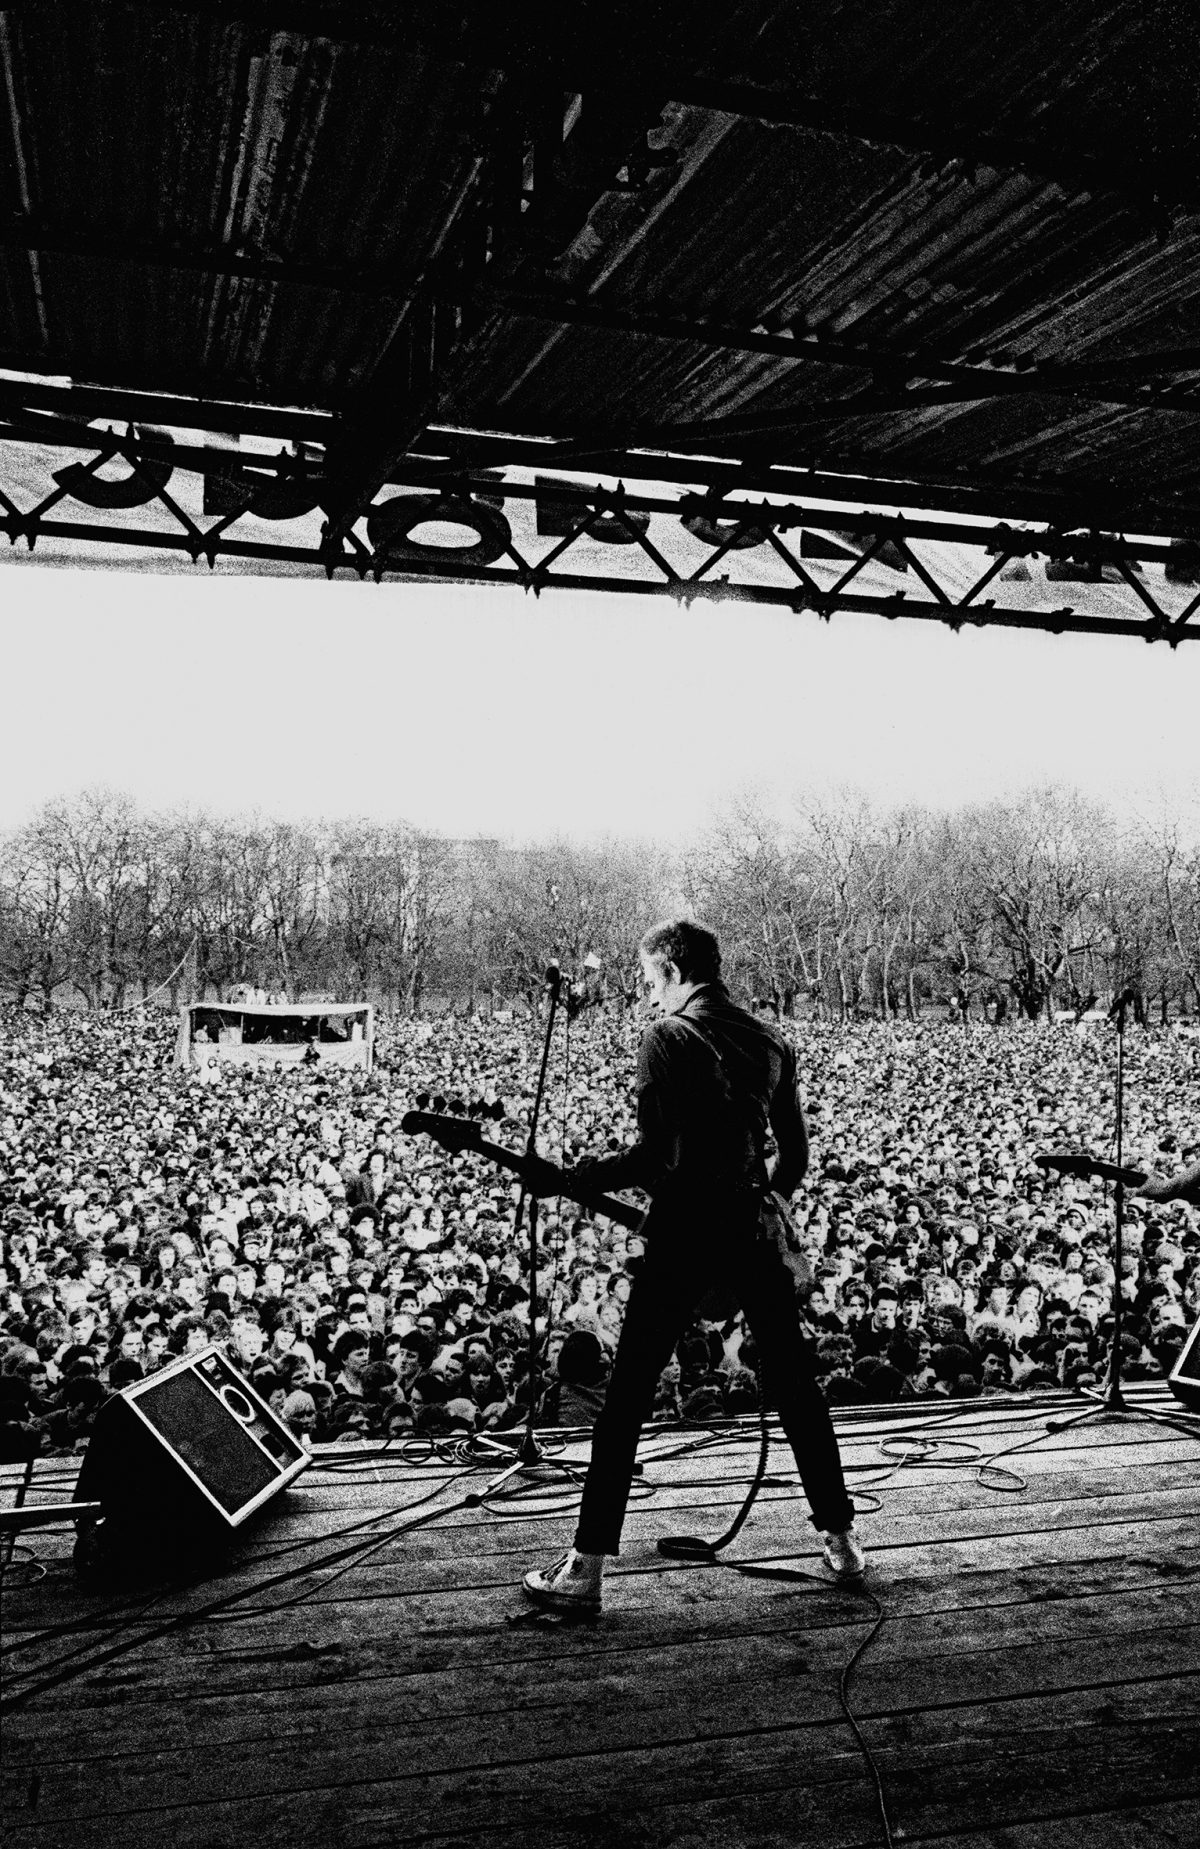 Paul Simonon of the Clash performs at the Rock Against Racism concert at Victoria Park, London in April, 1978 Photograph: © Syd Shelton